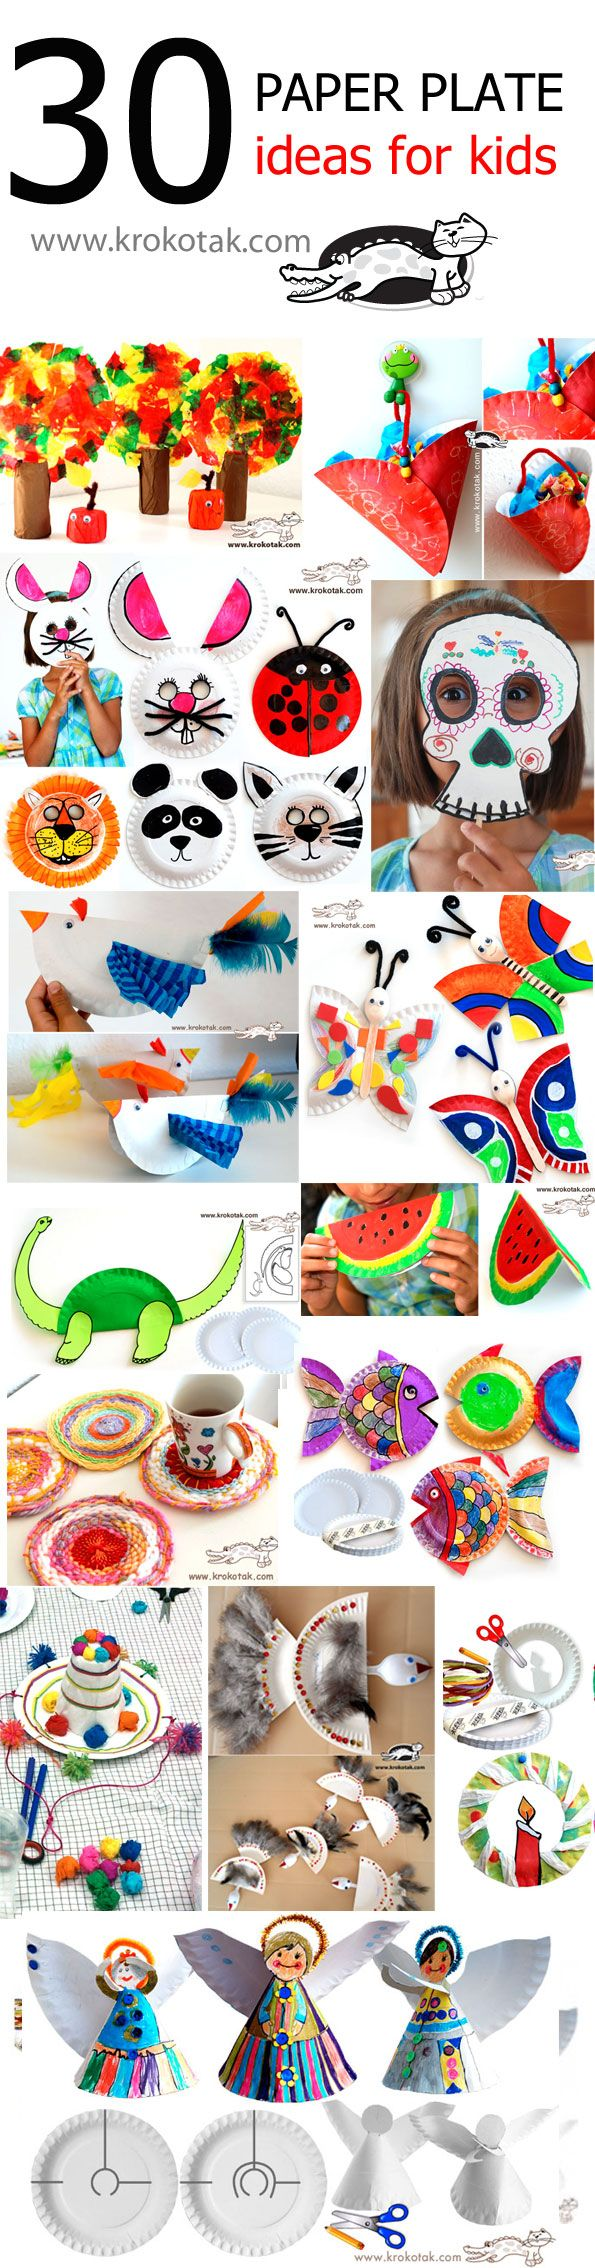 PAPER PLATE Ideas for kids inter-curricular: science (animals/seasons), math (shapes/pattern)